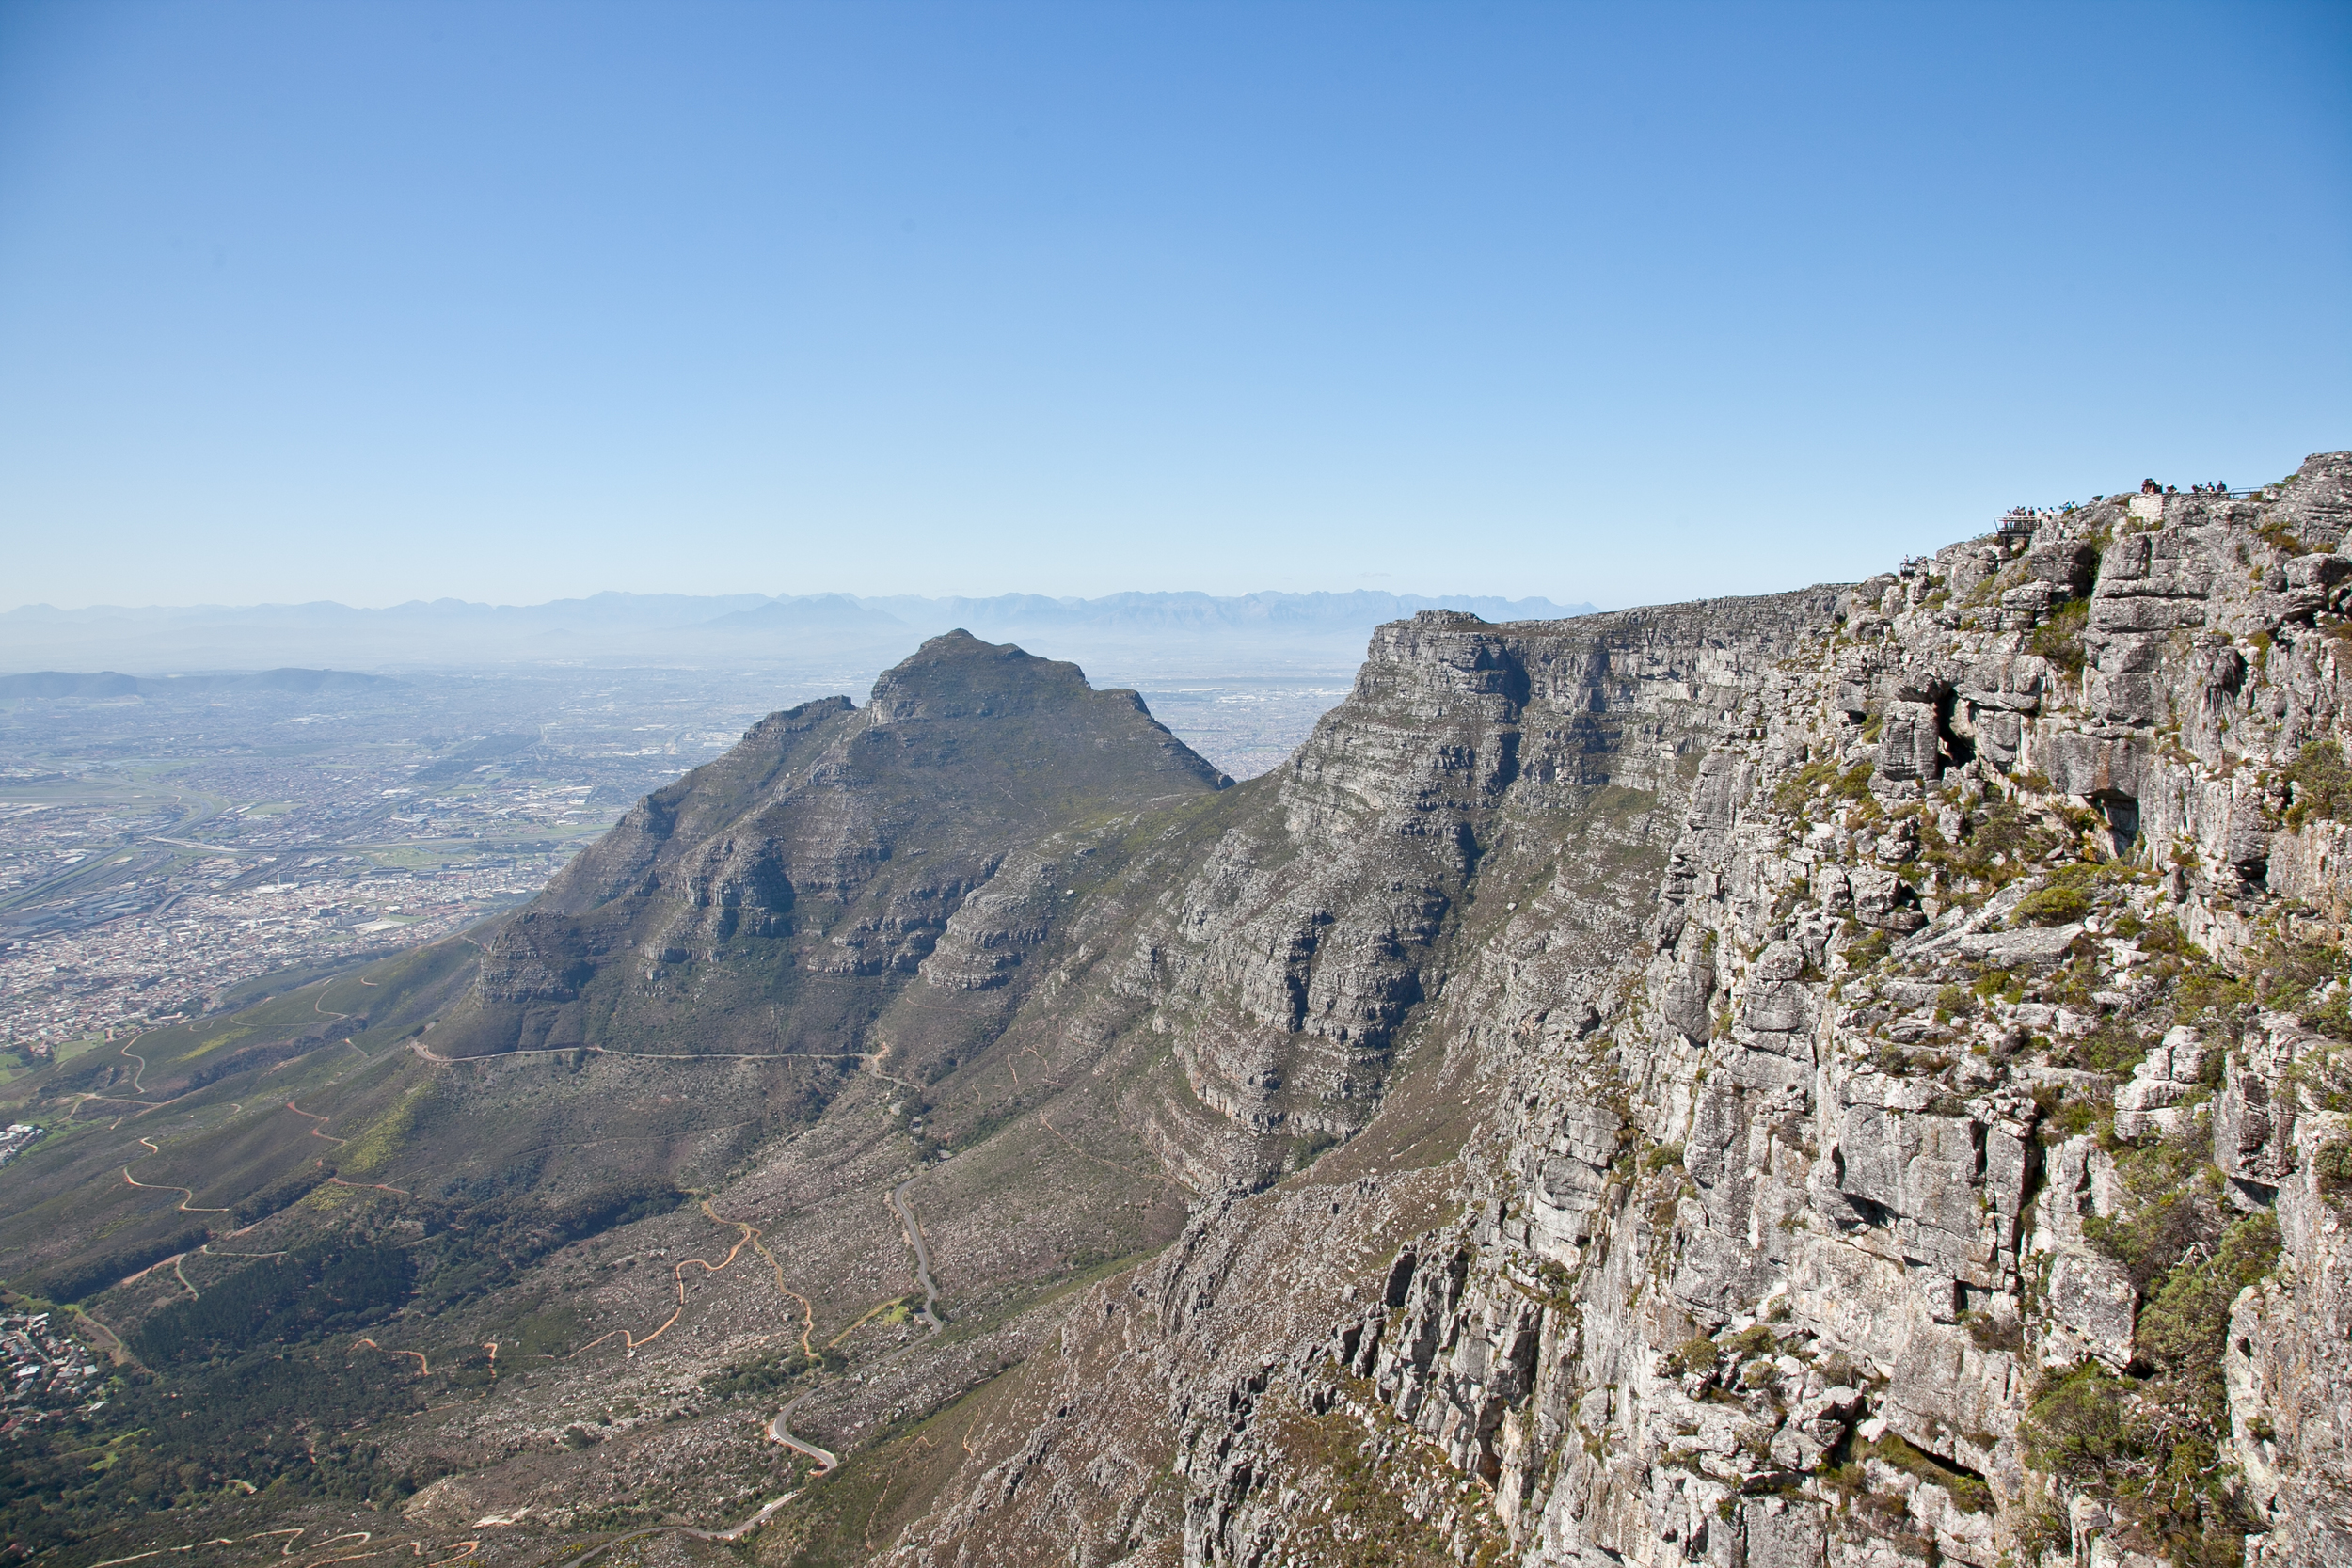 IMG_4710-table-mountain-cape-town-south-africa-trisa-taro.jpg